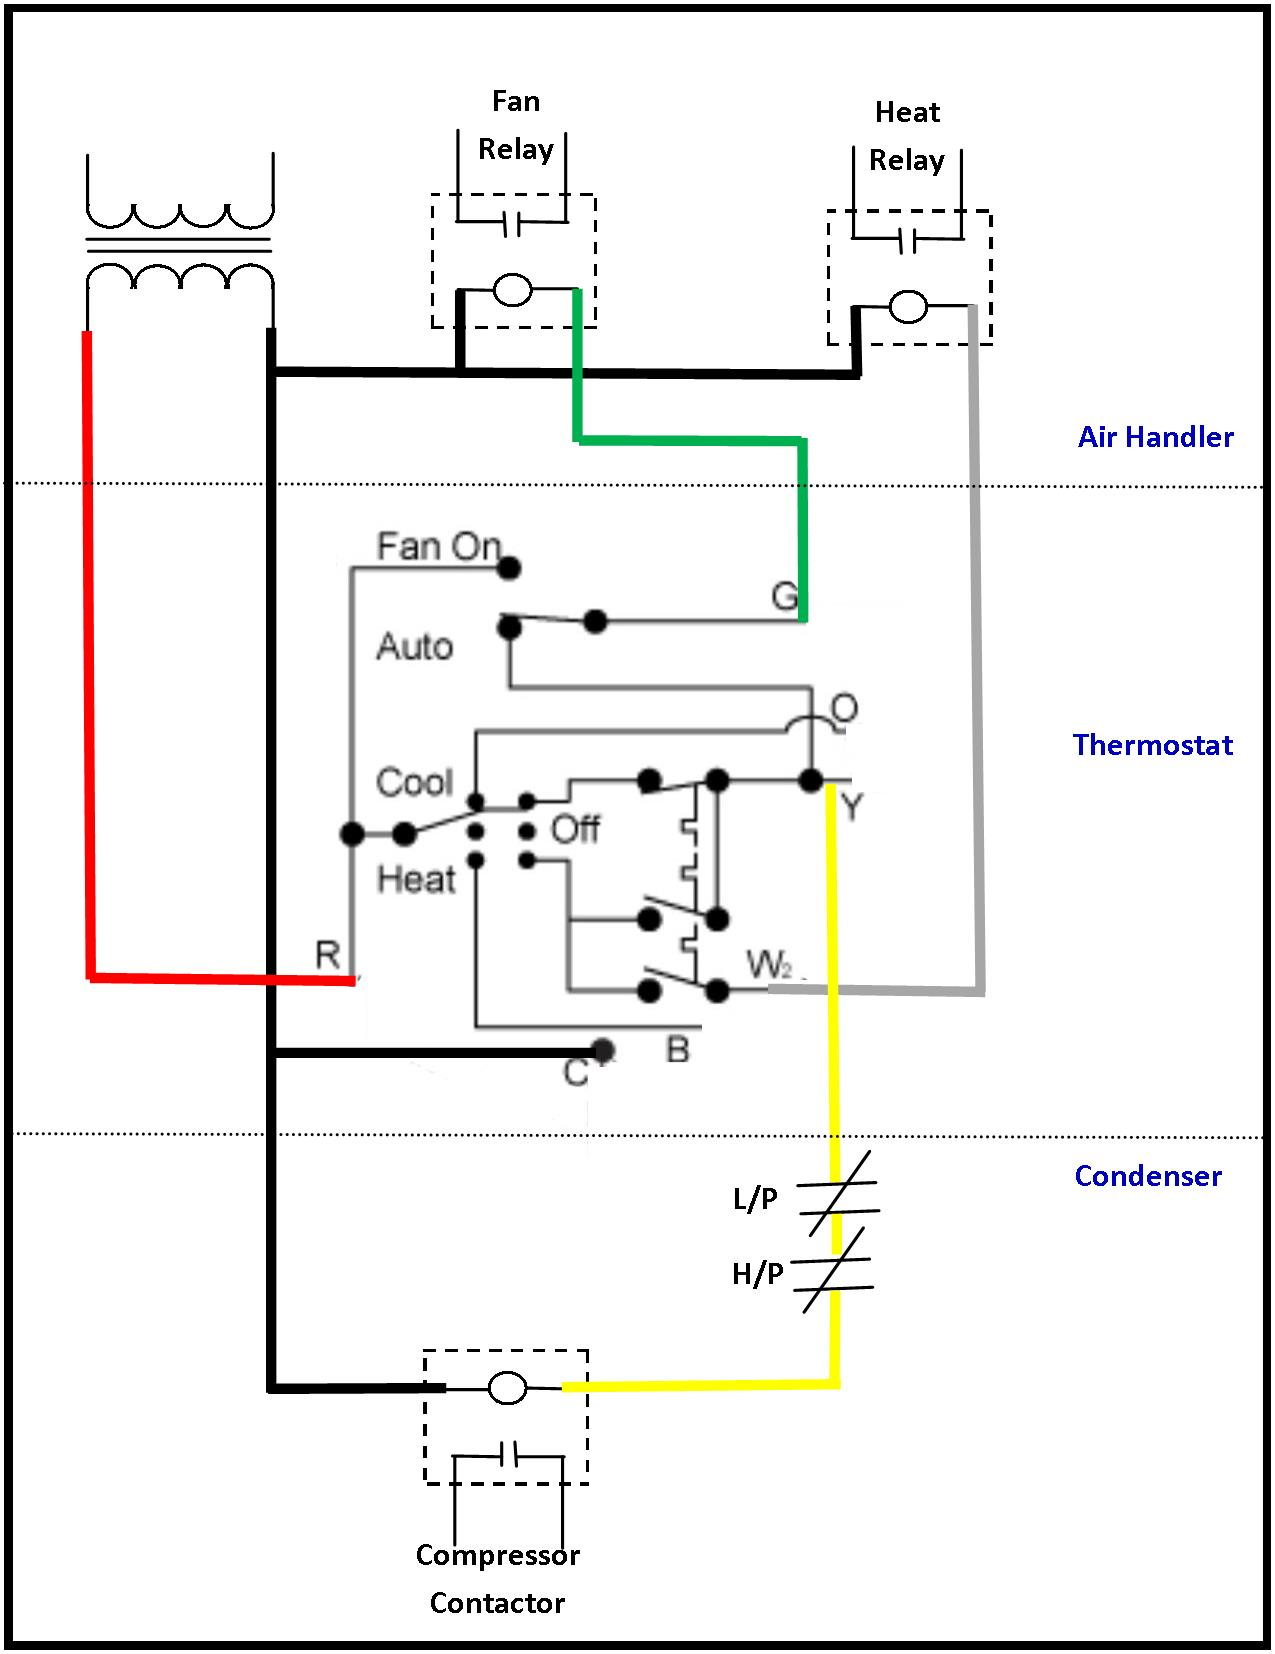 AC low voltage wiring diagram1?resize\\\\\\\\\\\\\\\\\\\\\\\\\\\=1275%2C1654 copelametic refrigeration wiring diagram wiring diagrams  at soozxer.org